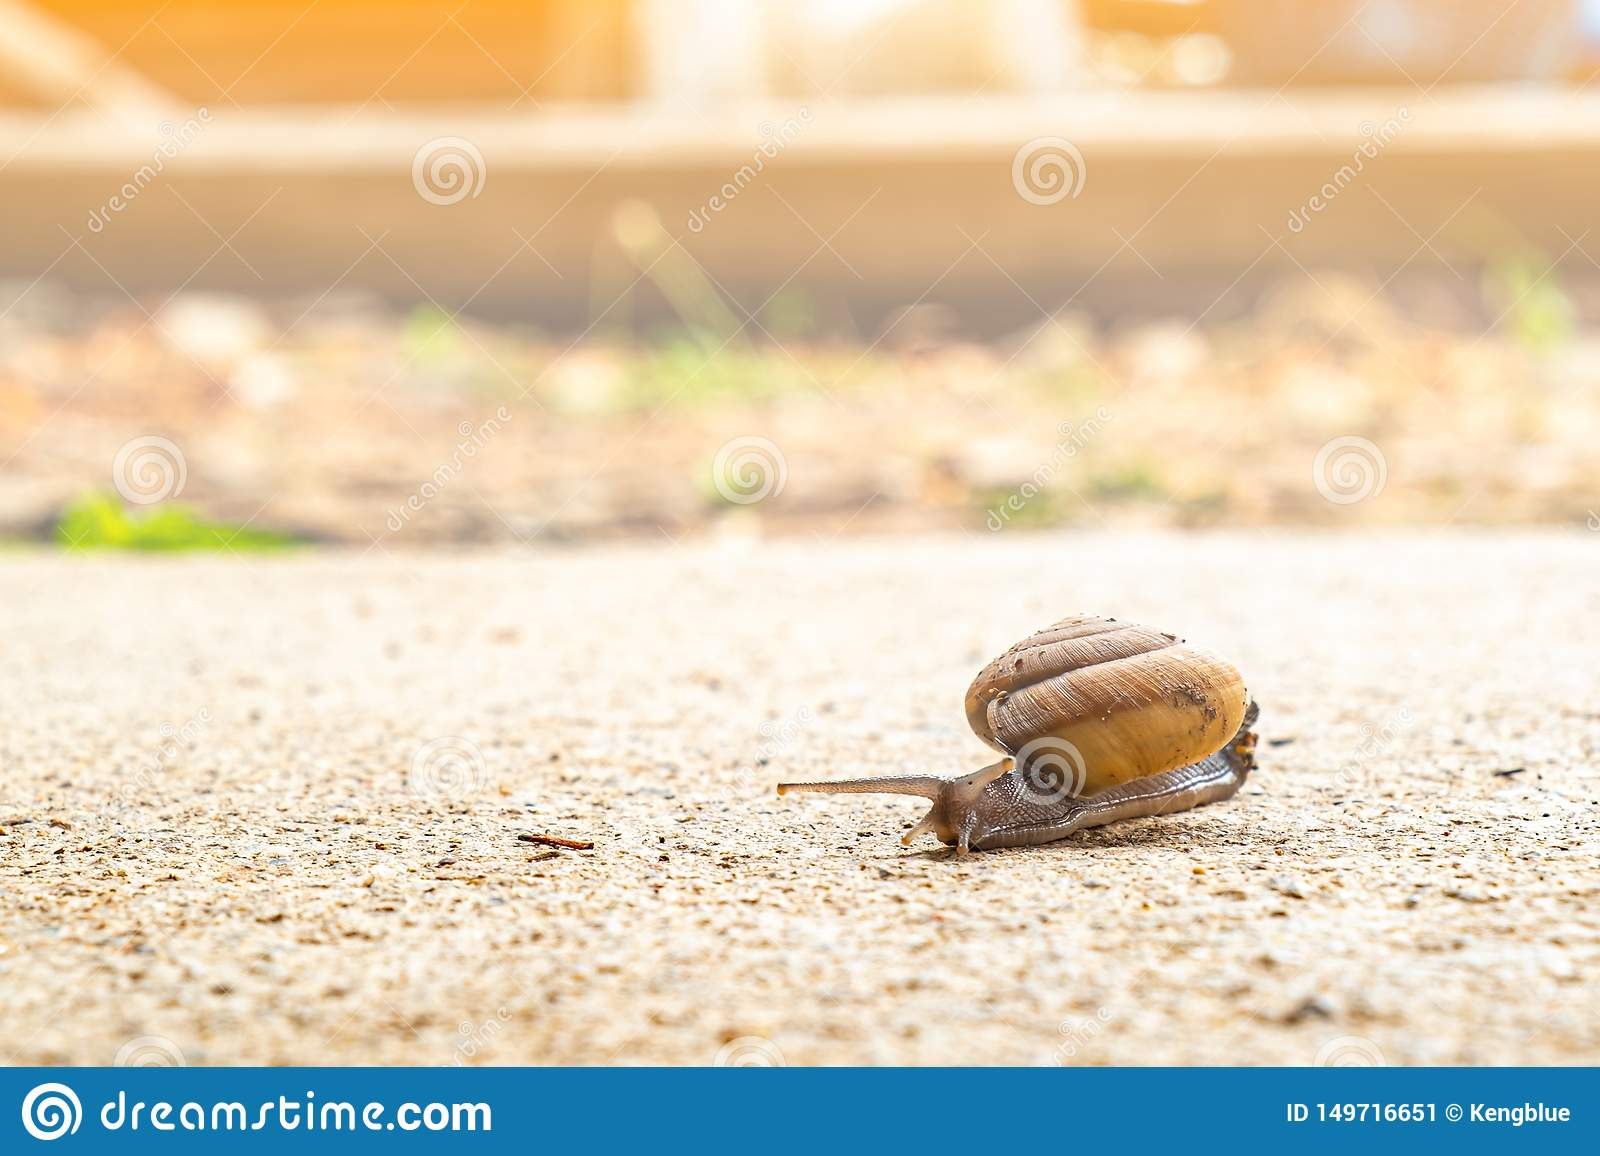 Snail crawling slowly on the rough cement floor